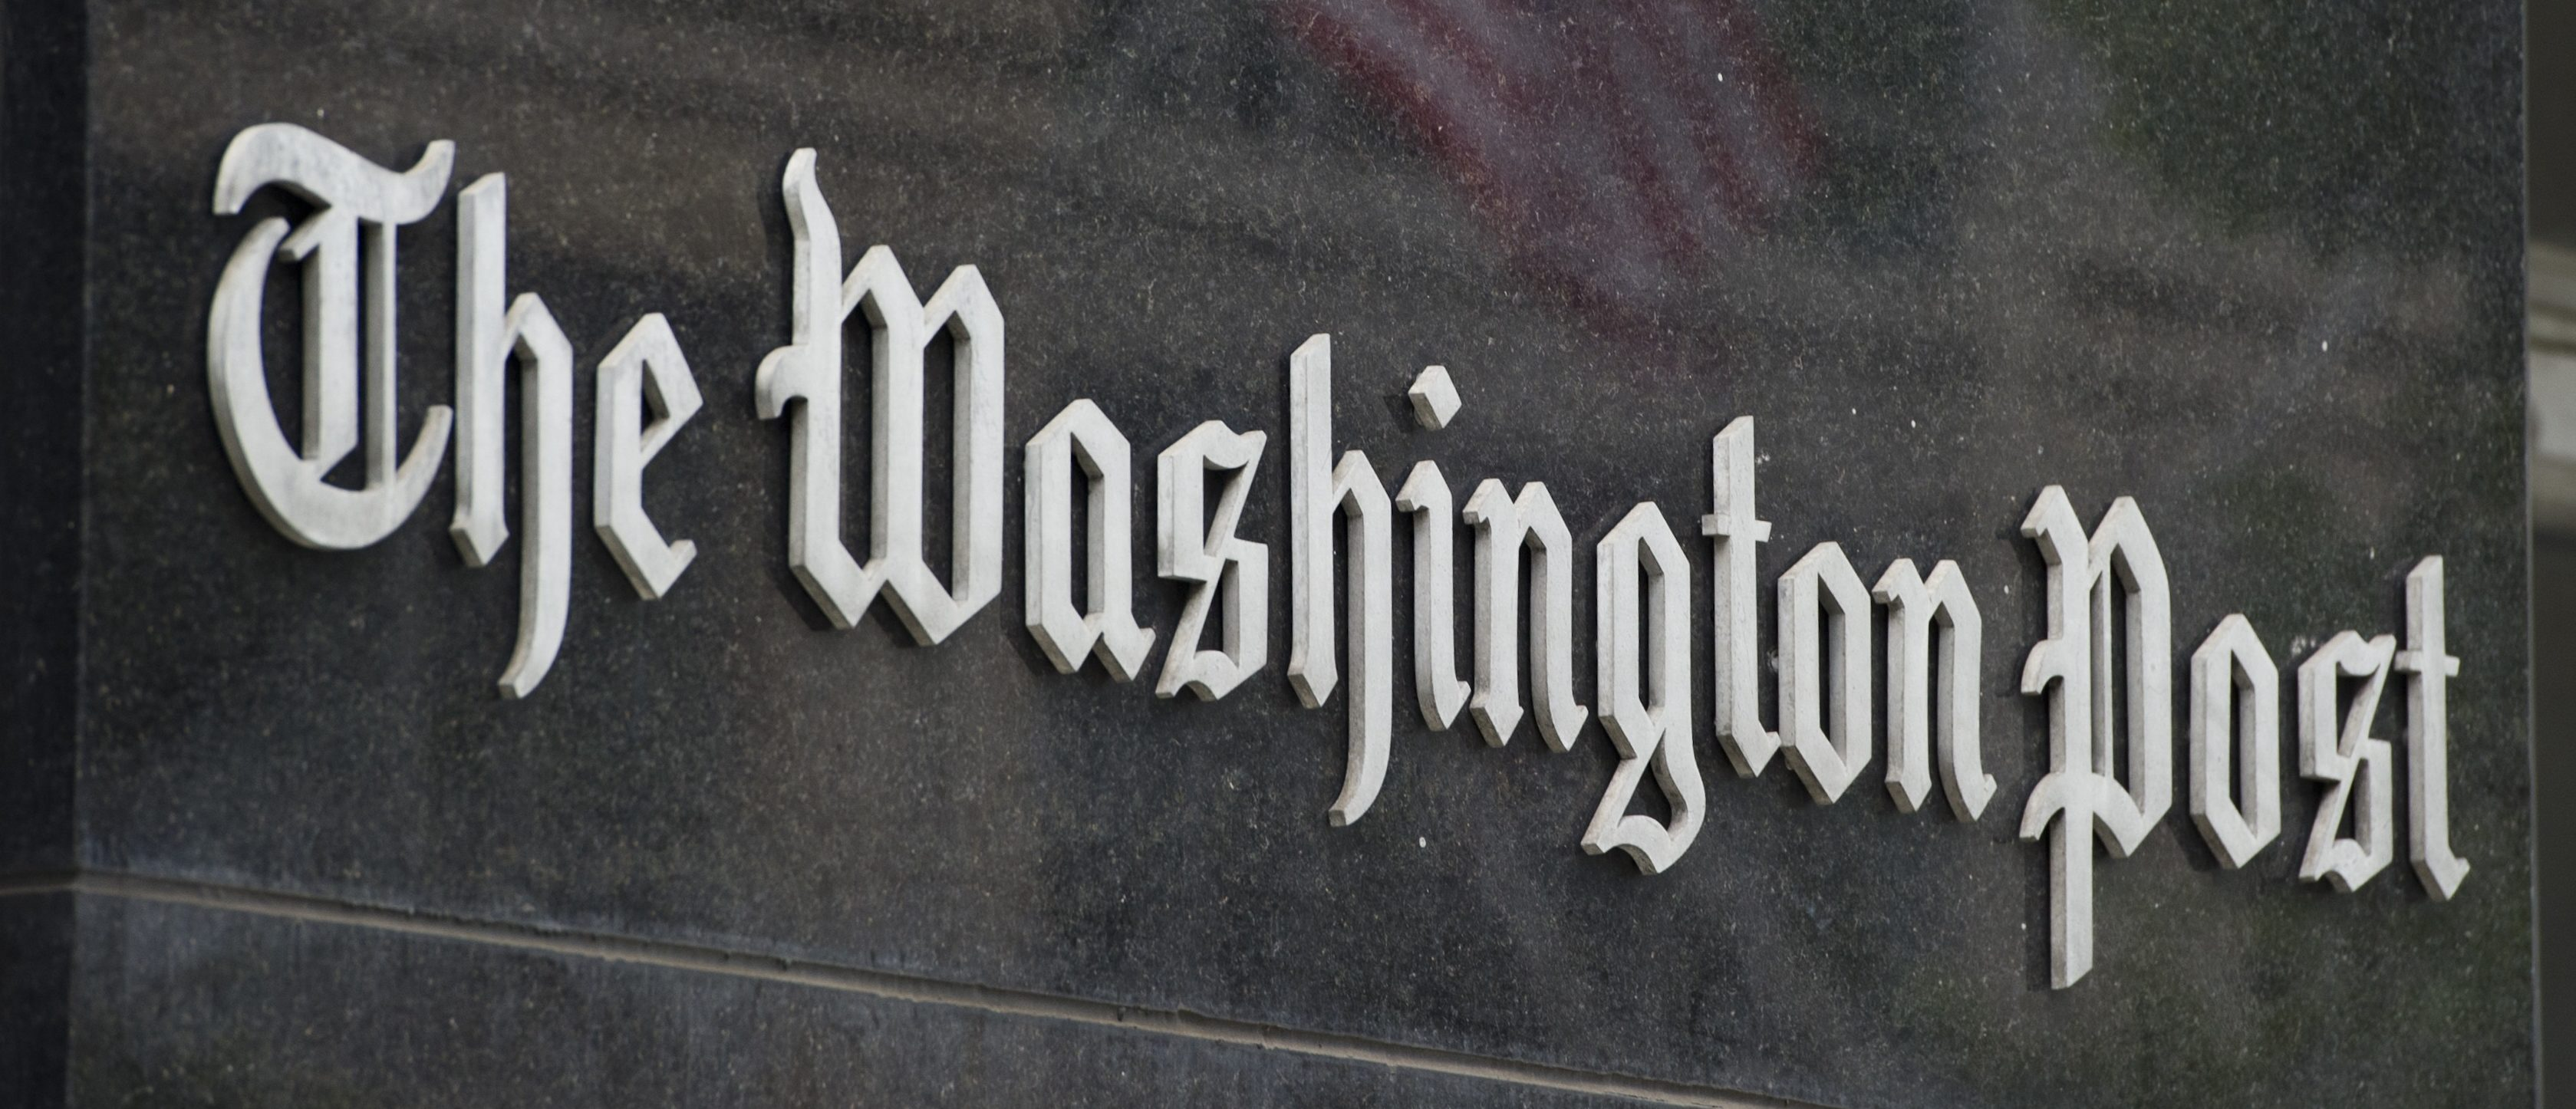 A sign hangs on the outside of the Washington Post Building August 6, 2013 in Washington, DC, the day after it was announced that Amazon.com founder and CEO Jeff Bezos had agreed to purchase the newspaper for USD 250 million. (SAUL LOEB/AFP via Getty Images)